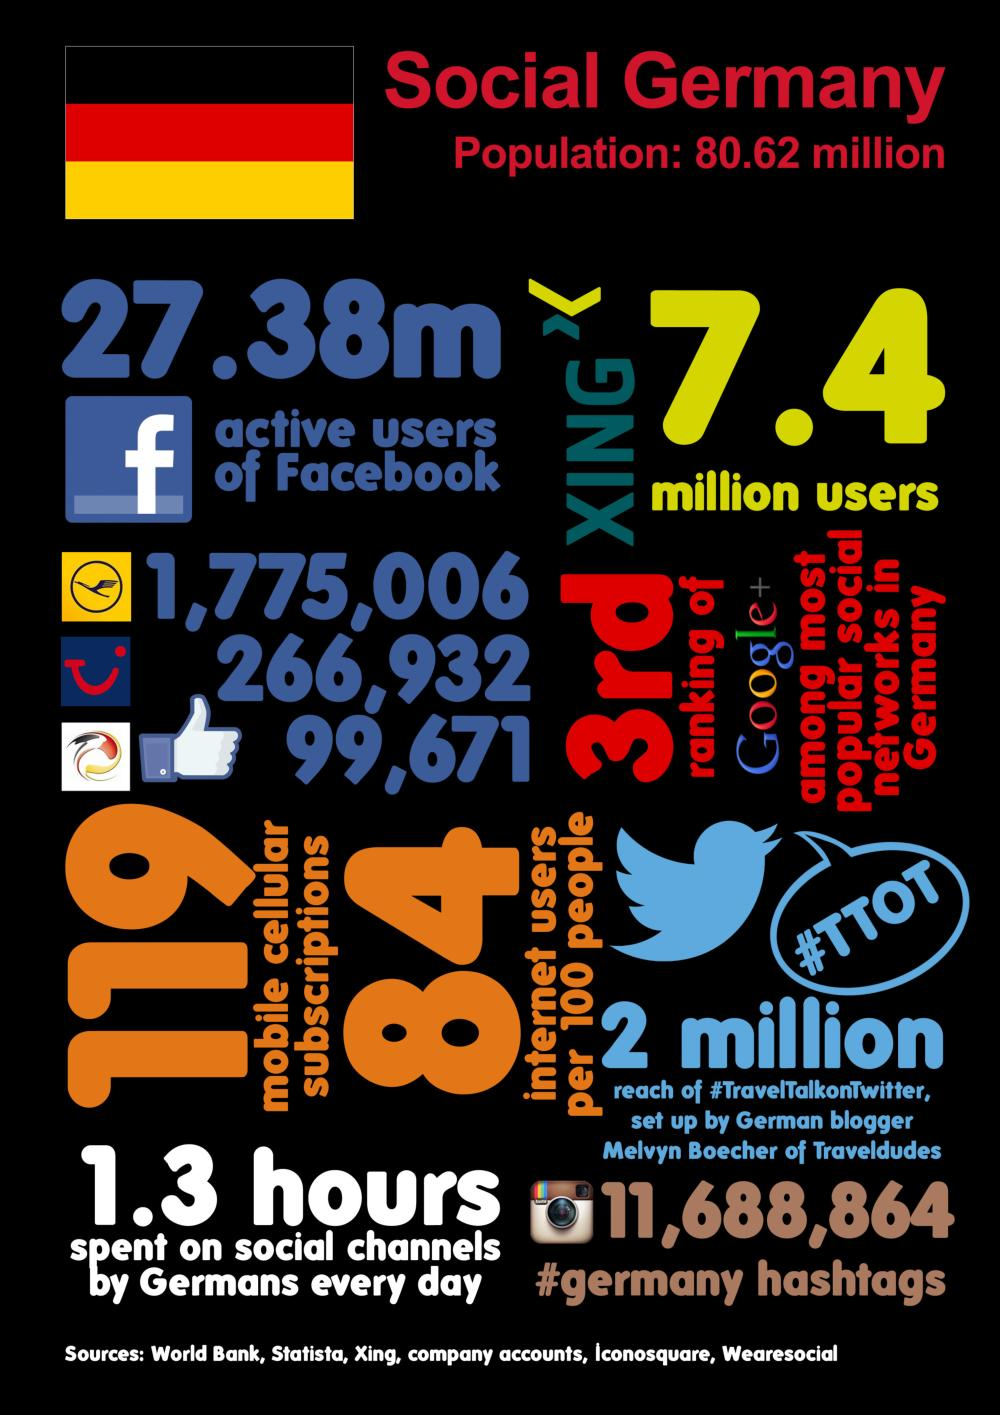 Social Germany in Numbers